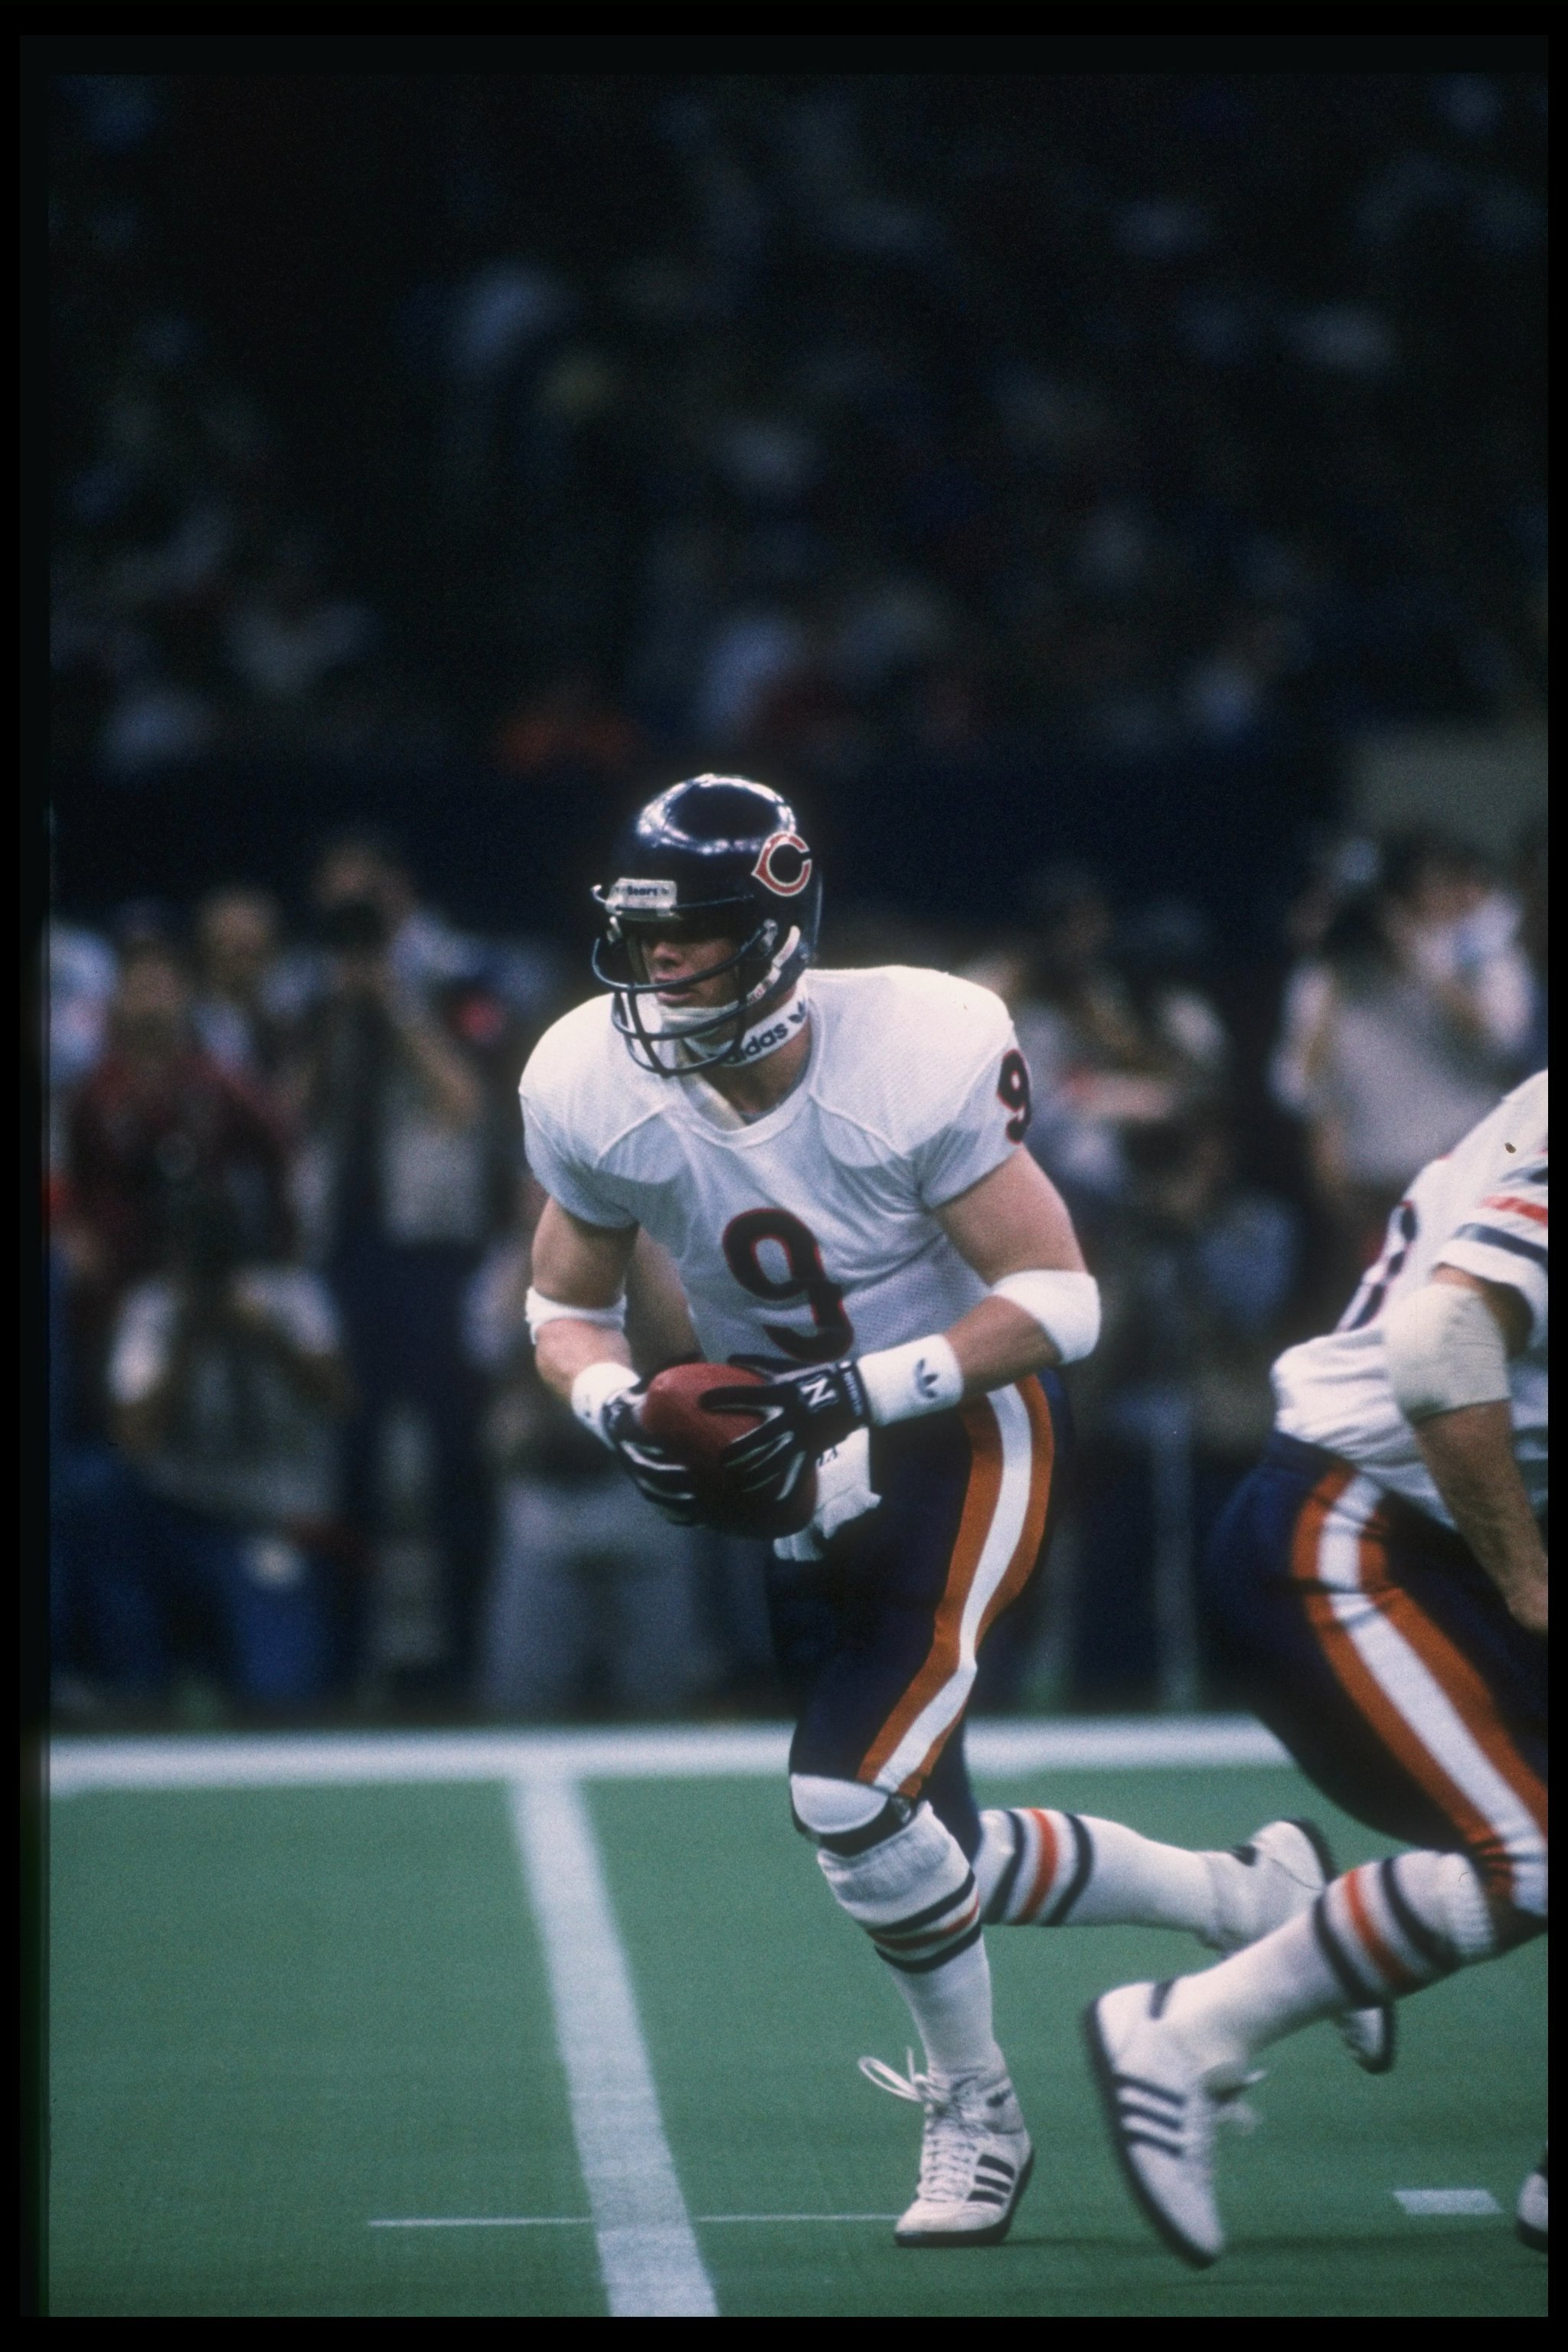 26 Jan 1986: Quarteback Jim McMahon of the Chicago Bears prepares to hand off the ball during Super Bowl XX against the New England Patriots at the Superdome in New Orleans, Louisiana. The Bears won the game, 46-10.